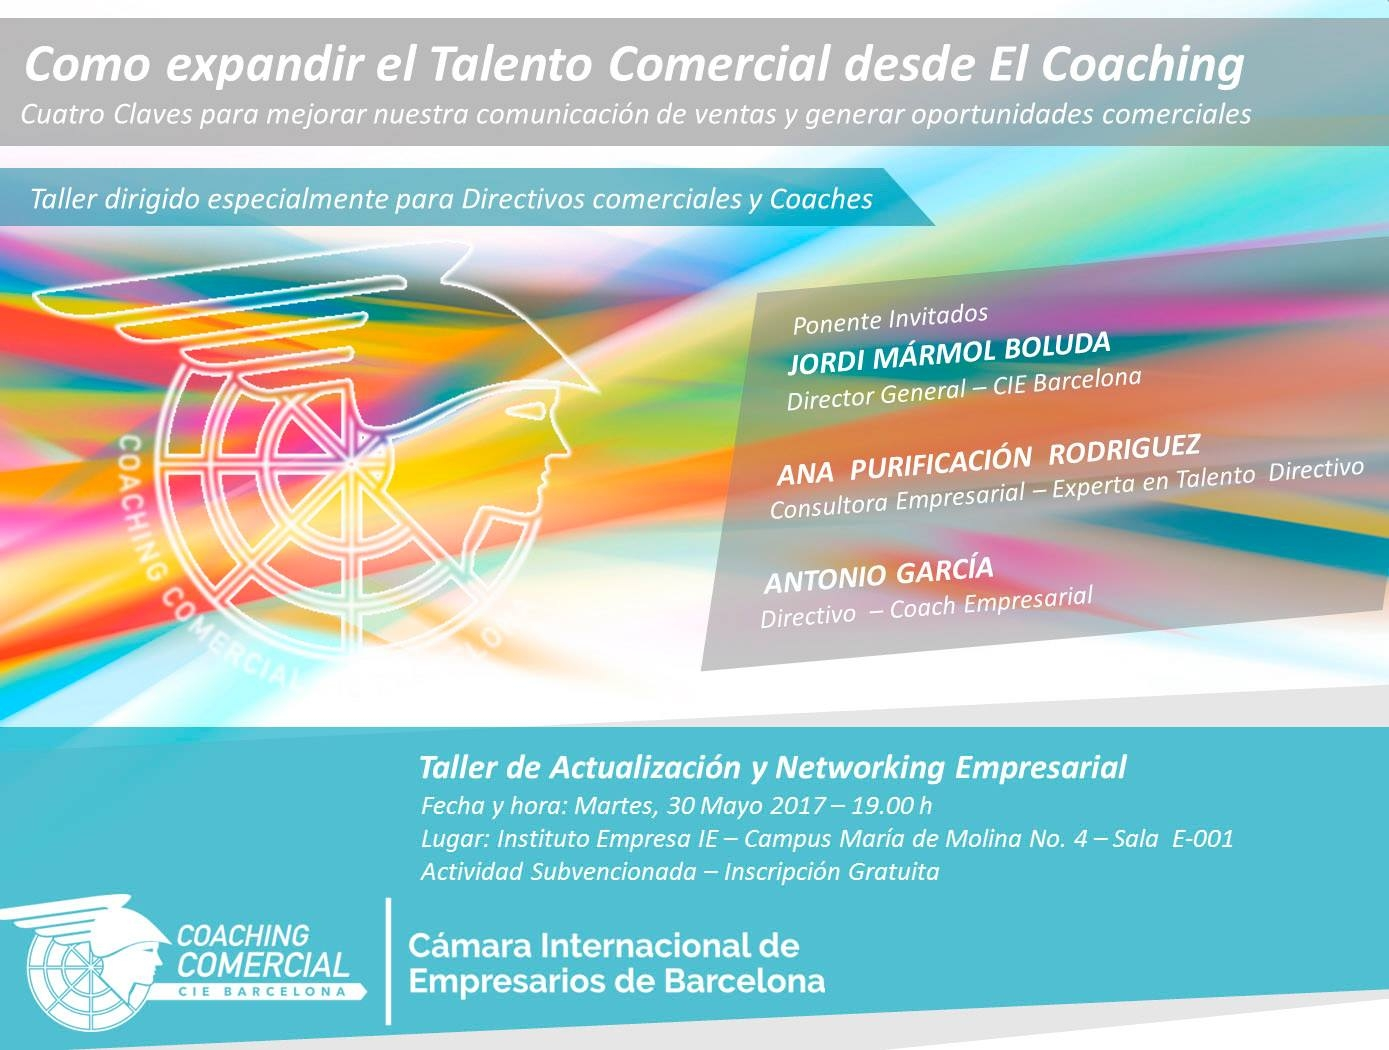 CIEBARCELONA LLEVA EL COACHING COMERCIAL AL INSTITUTO EMPRESA MADRID